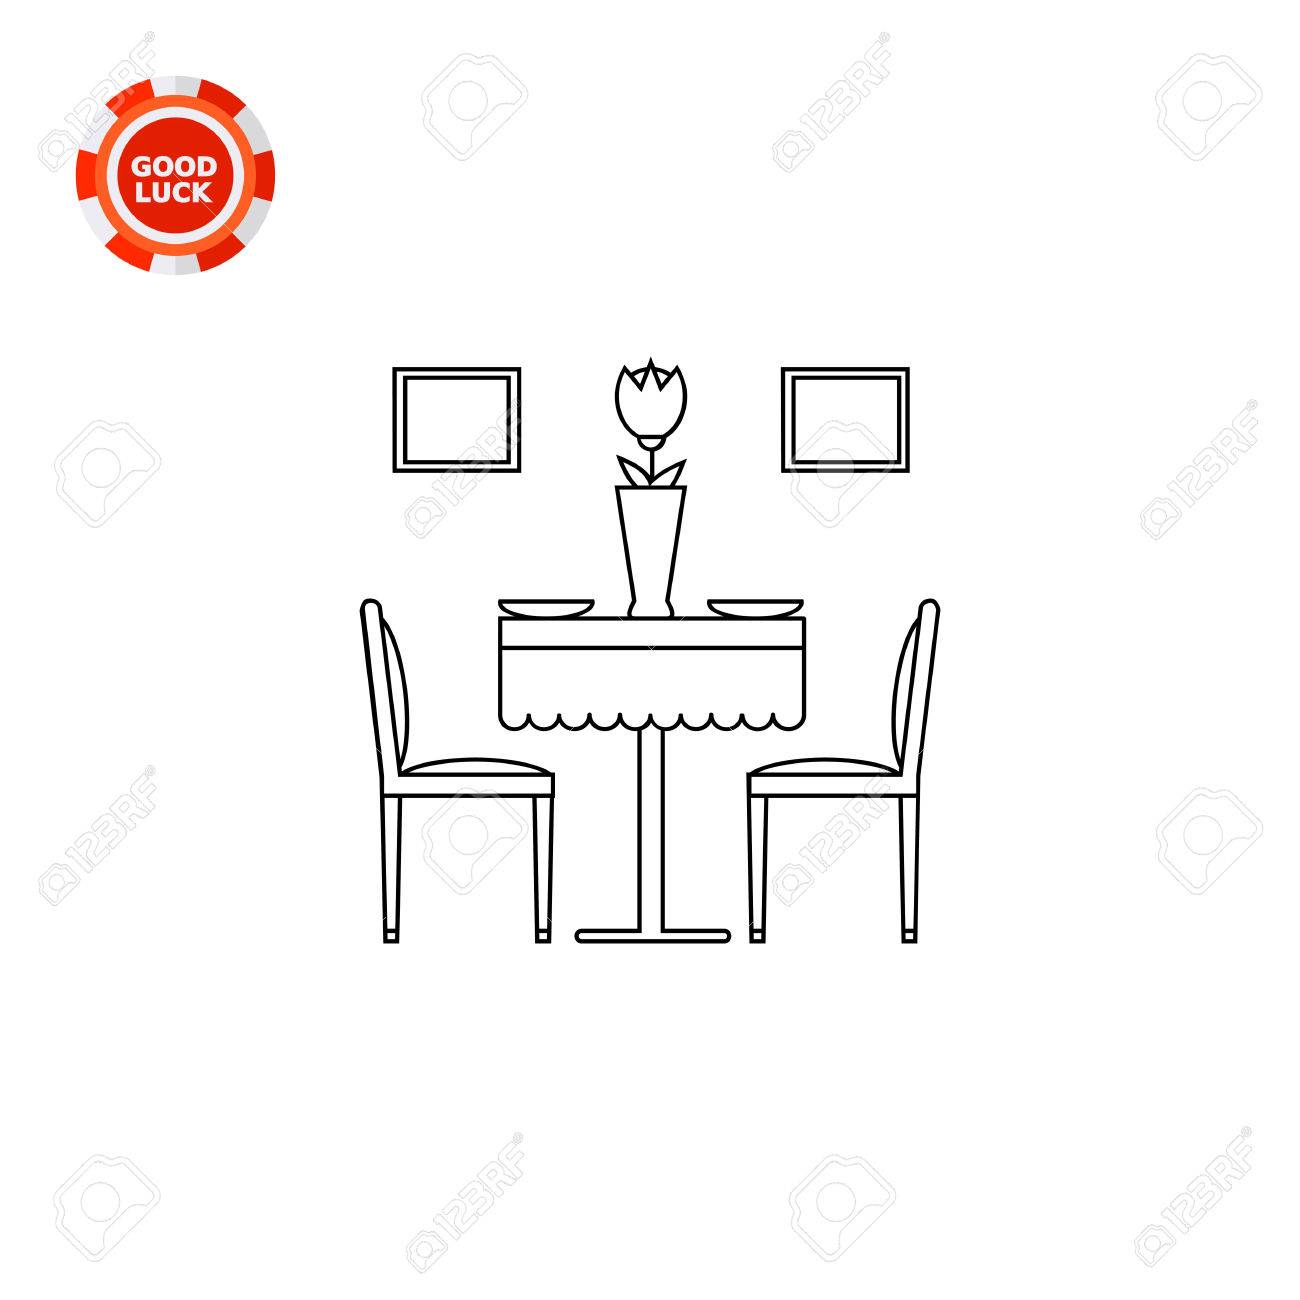 Dining Room Set With Served Table And Chairs. Domestic, Eating, Decorative.  Dining